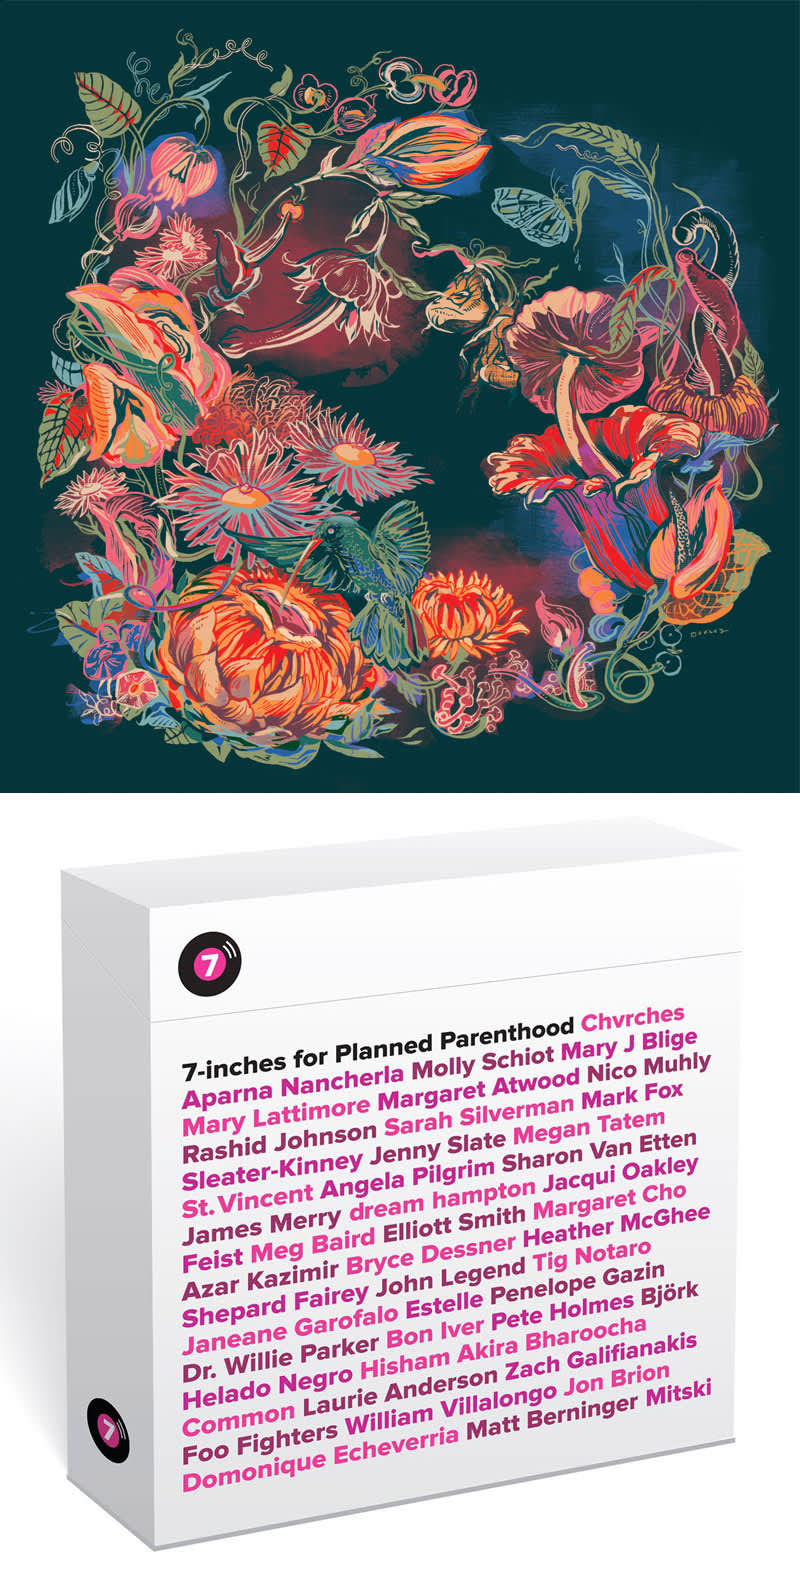 Vinyl Cover Artwork | 7 Inches for Planned Parenthood